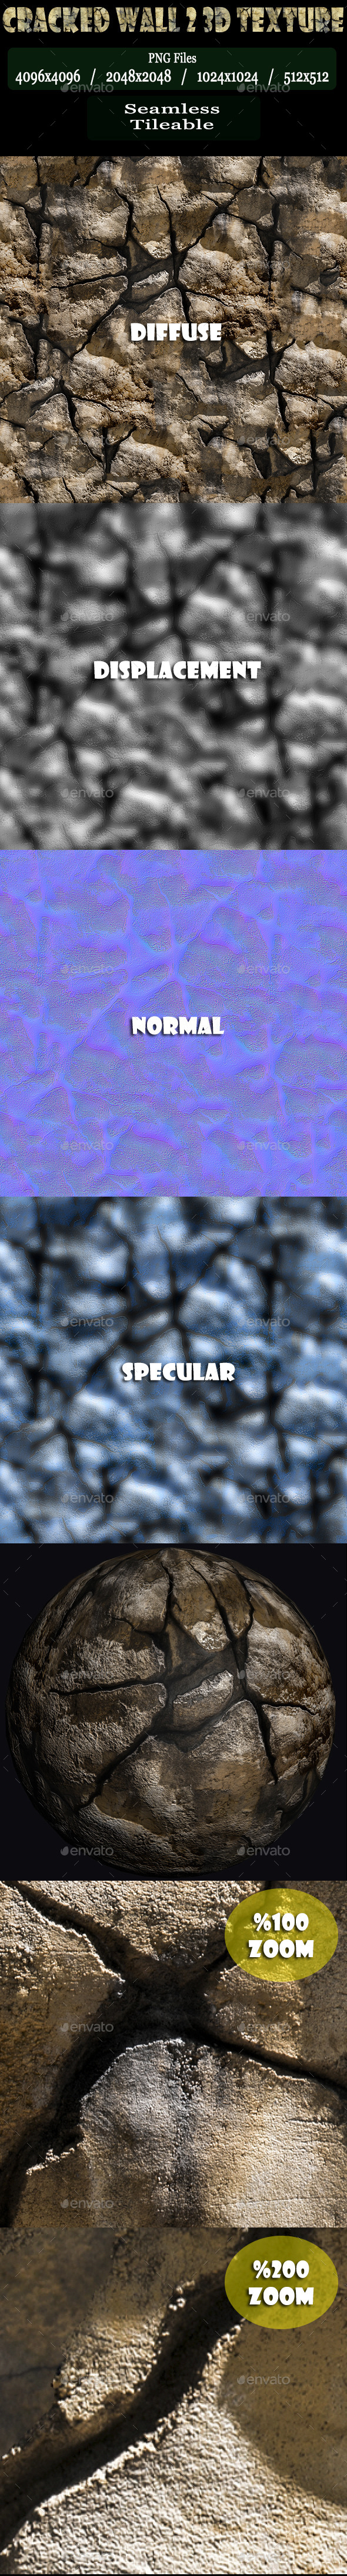 Cracked Wall 2 3D Texture - 3DOcean Item for Sale